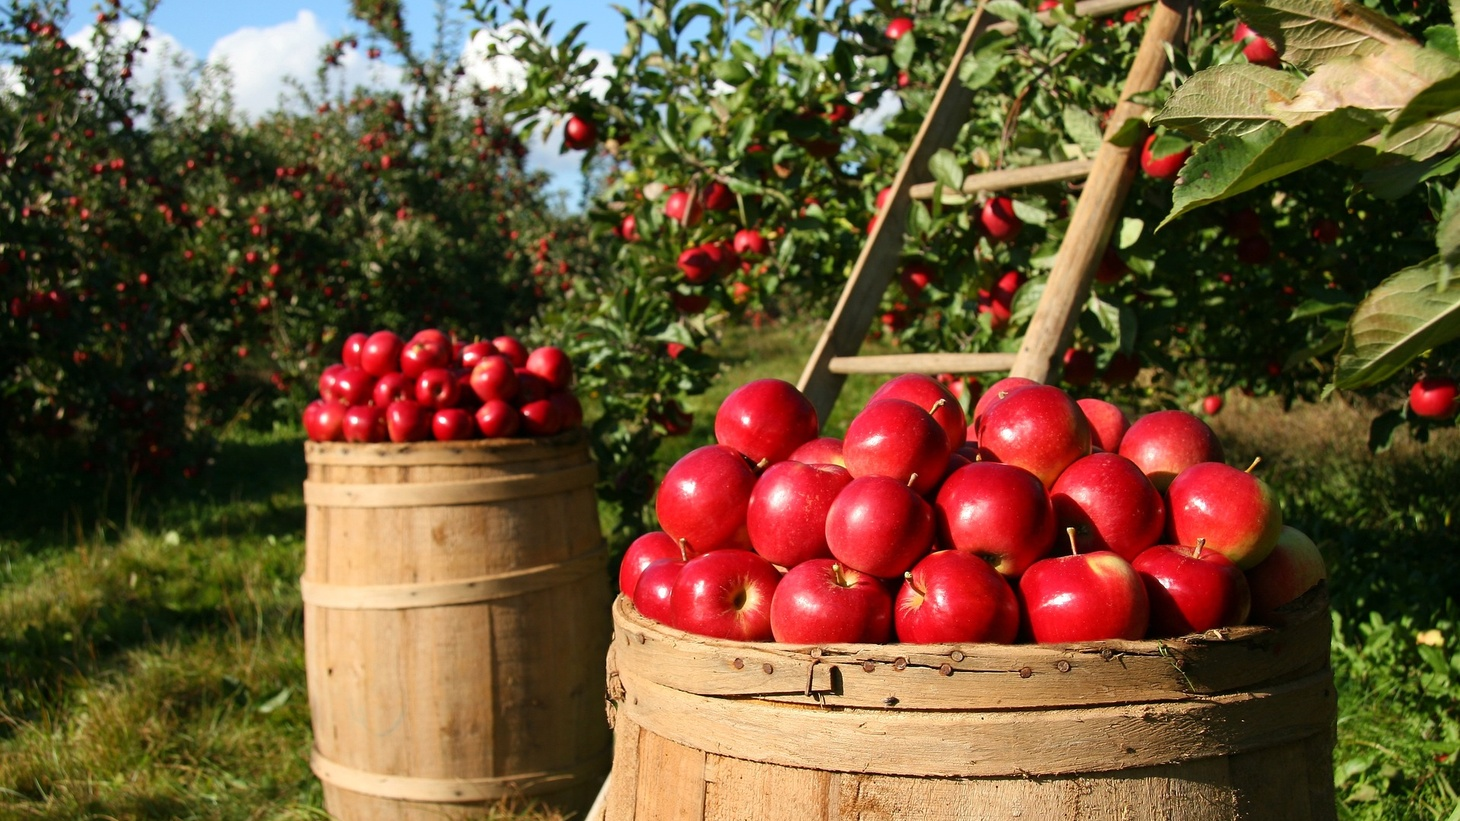 Chlorpyrifos is used on fruit, among other crops.